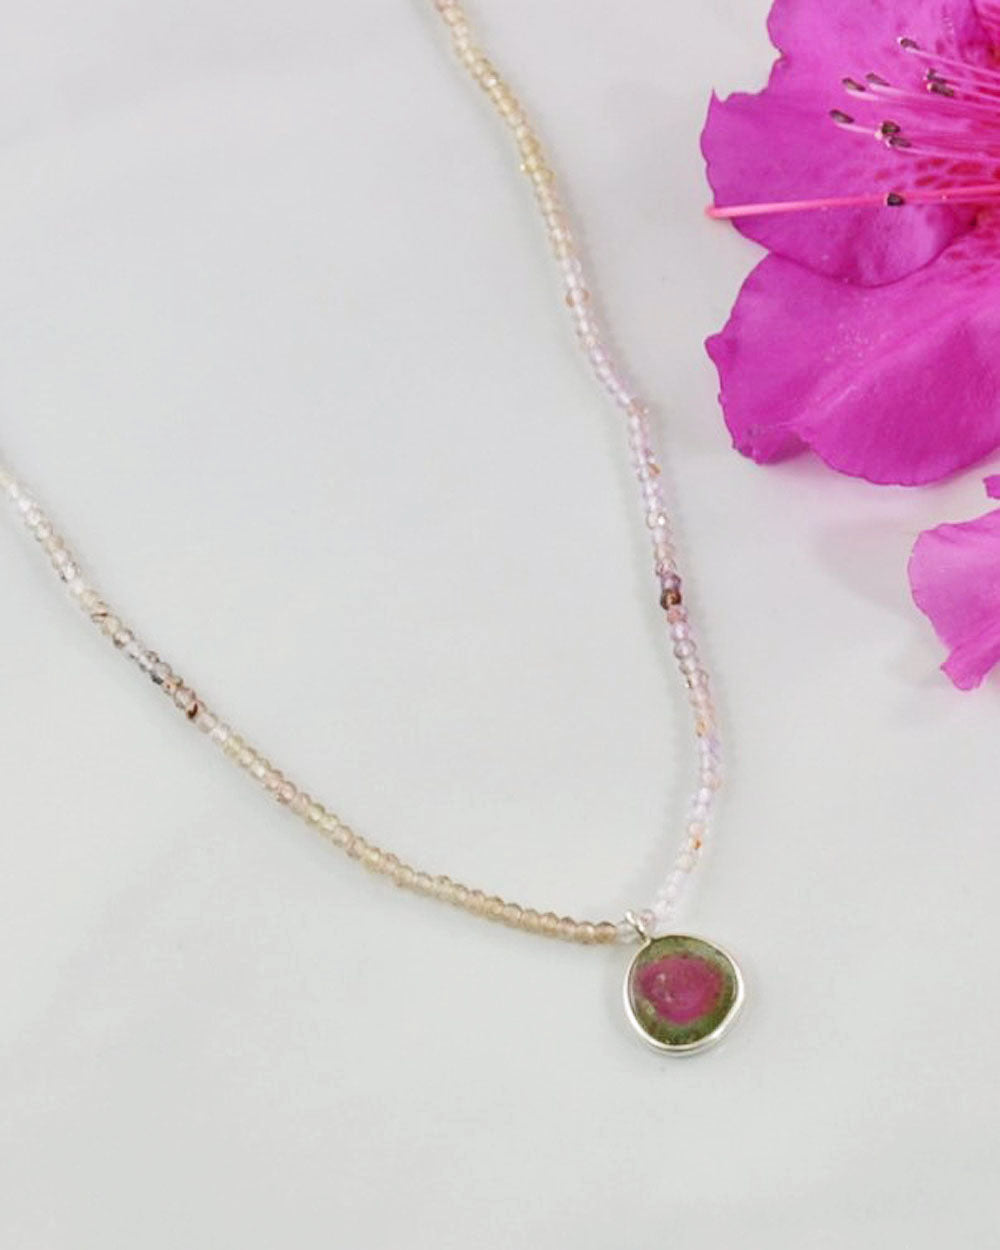 Empowered Watermelon Tourmaline Necklace - Abundance